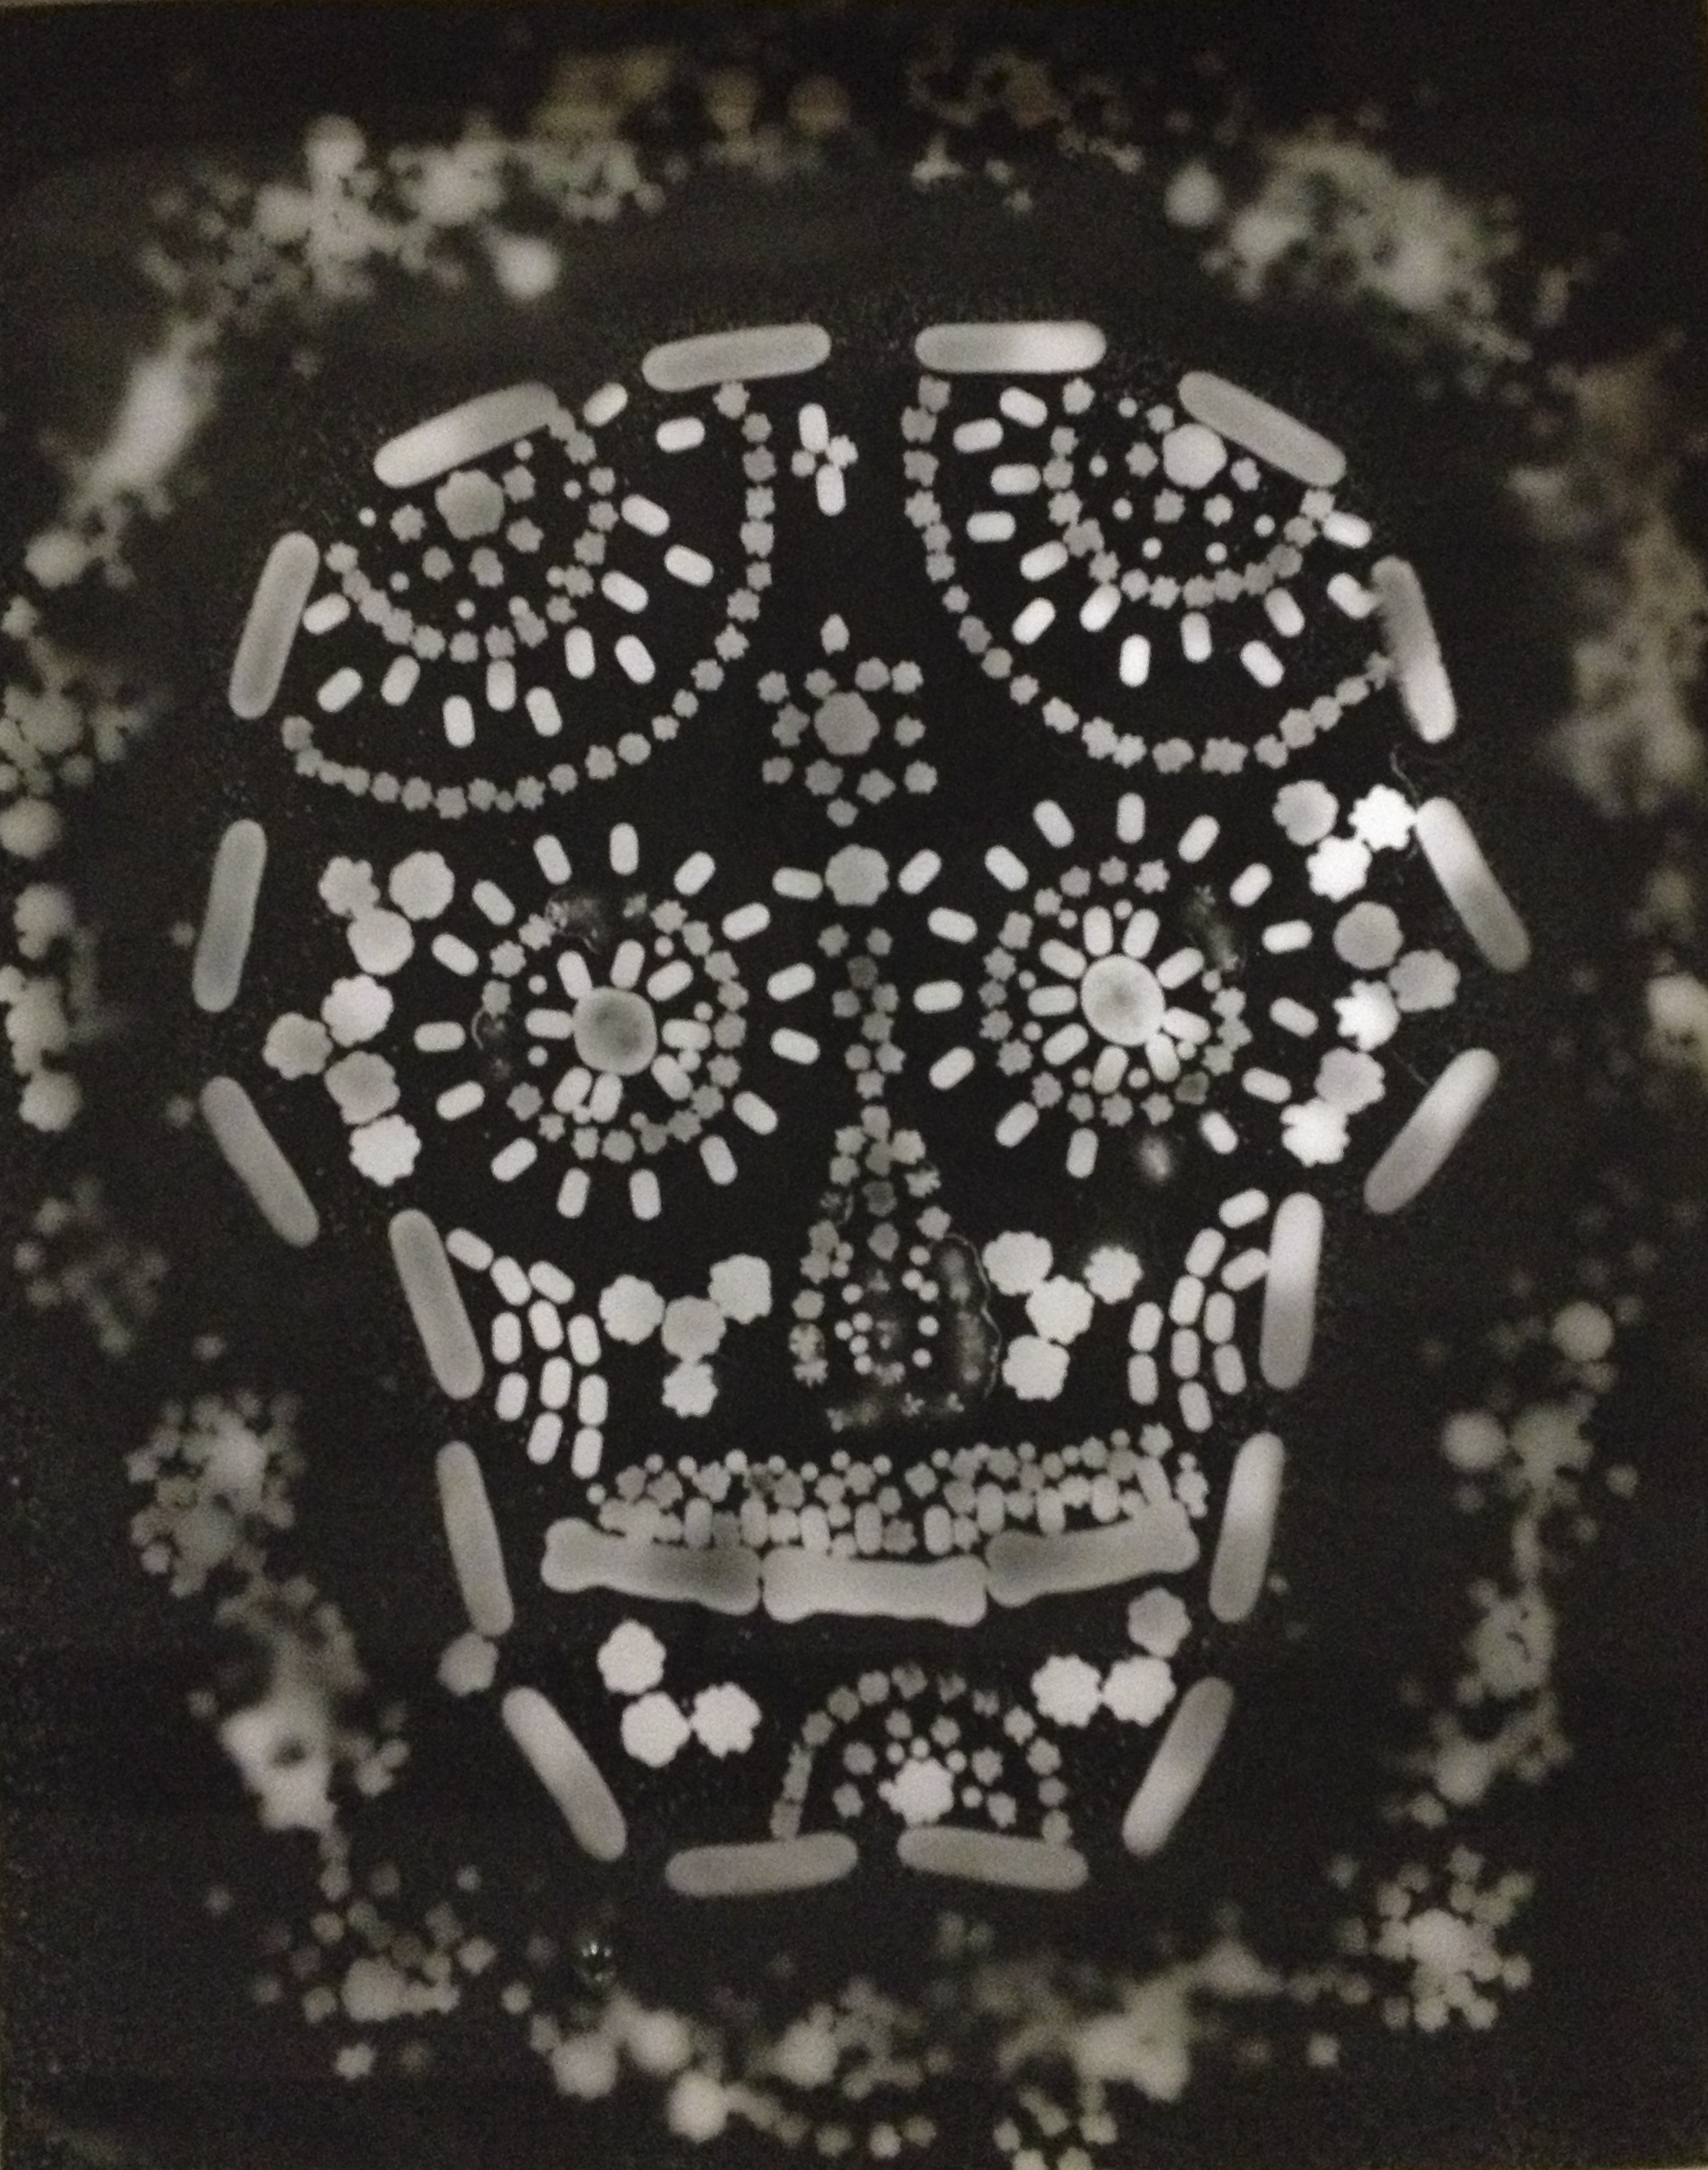 The photogram on a tray of fixer